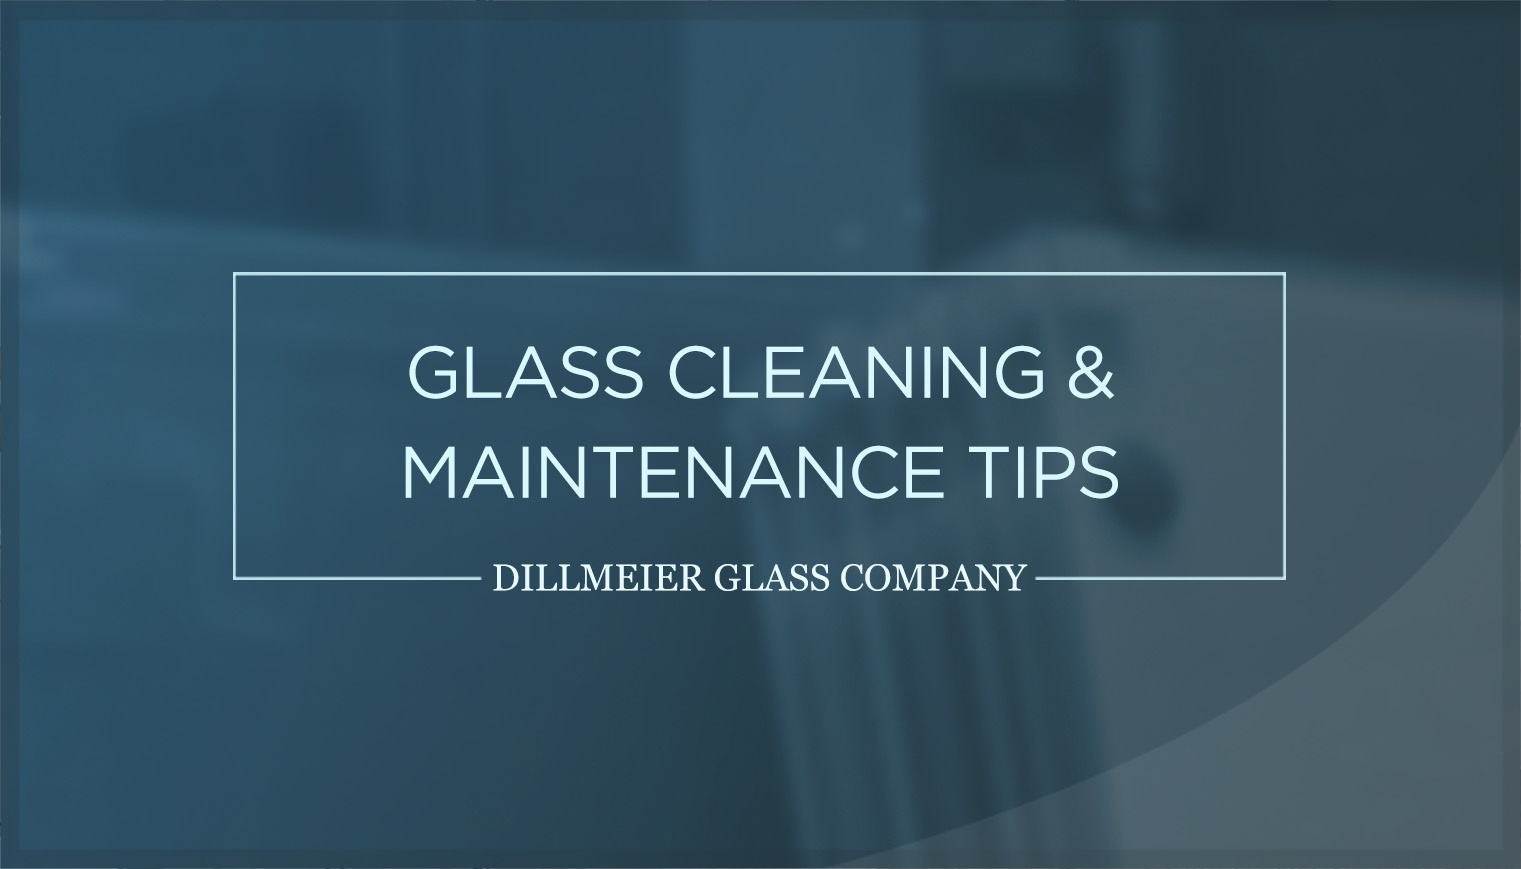 Glass Cleaning & Maintenance Tips